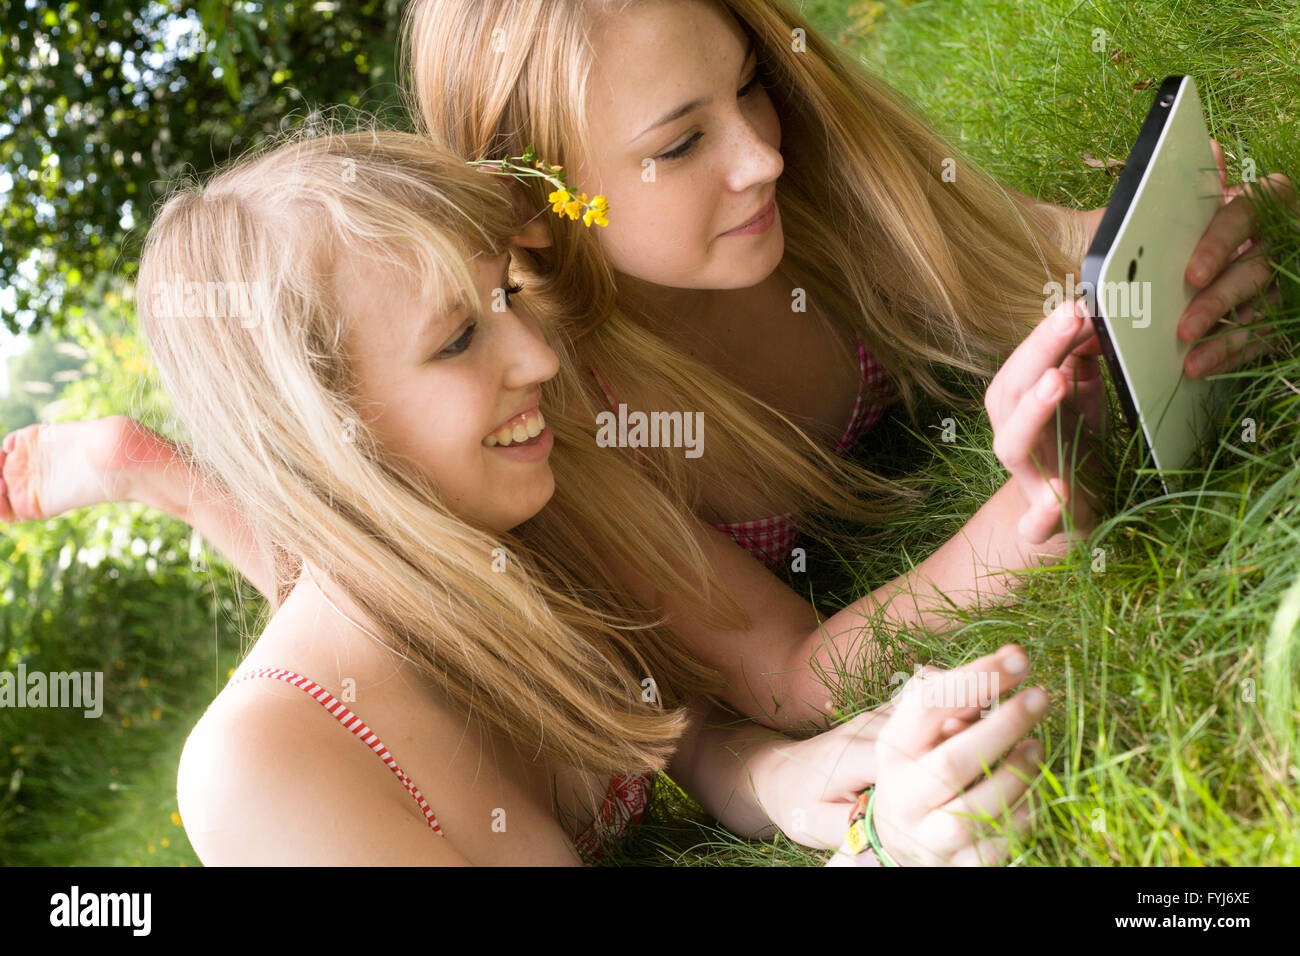 Girls and a touchpad - Stock Image